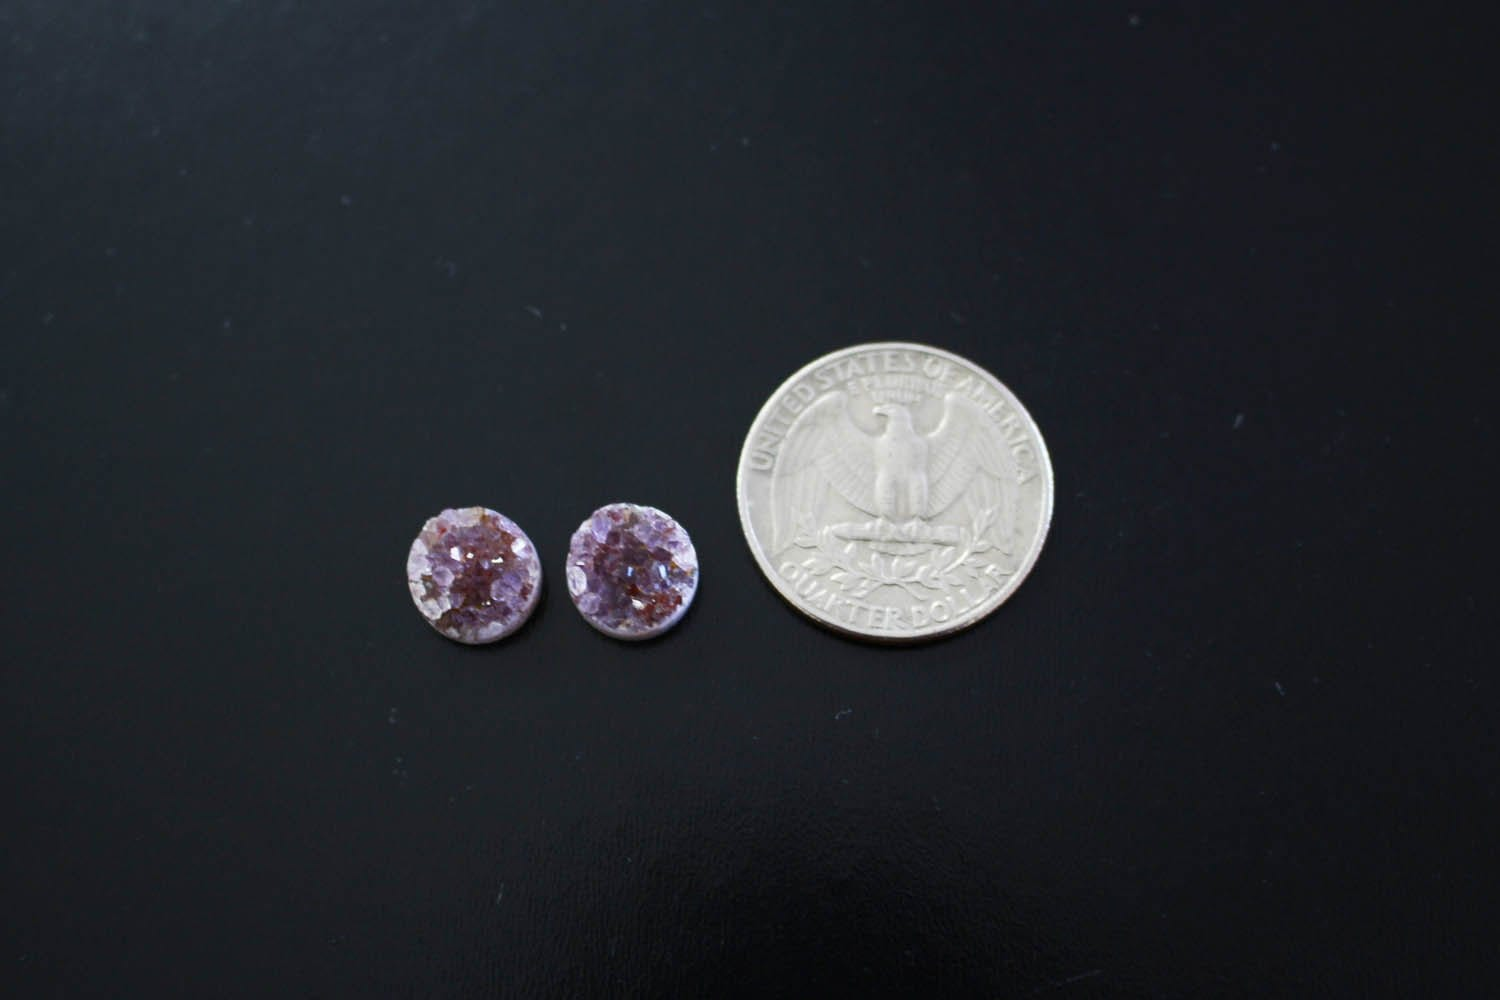 Druzy - 2 Pcs Natural Round Druzy Cabochon Pair - Round 10mm - Colorful Druzy Stone - Perfect For Jewelry Making (RK91B12-01)